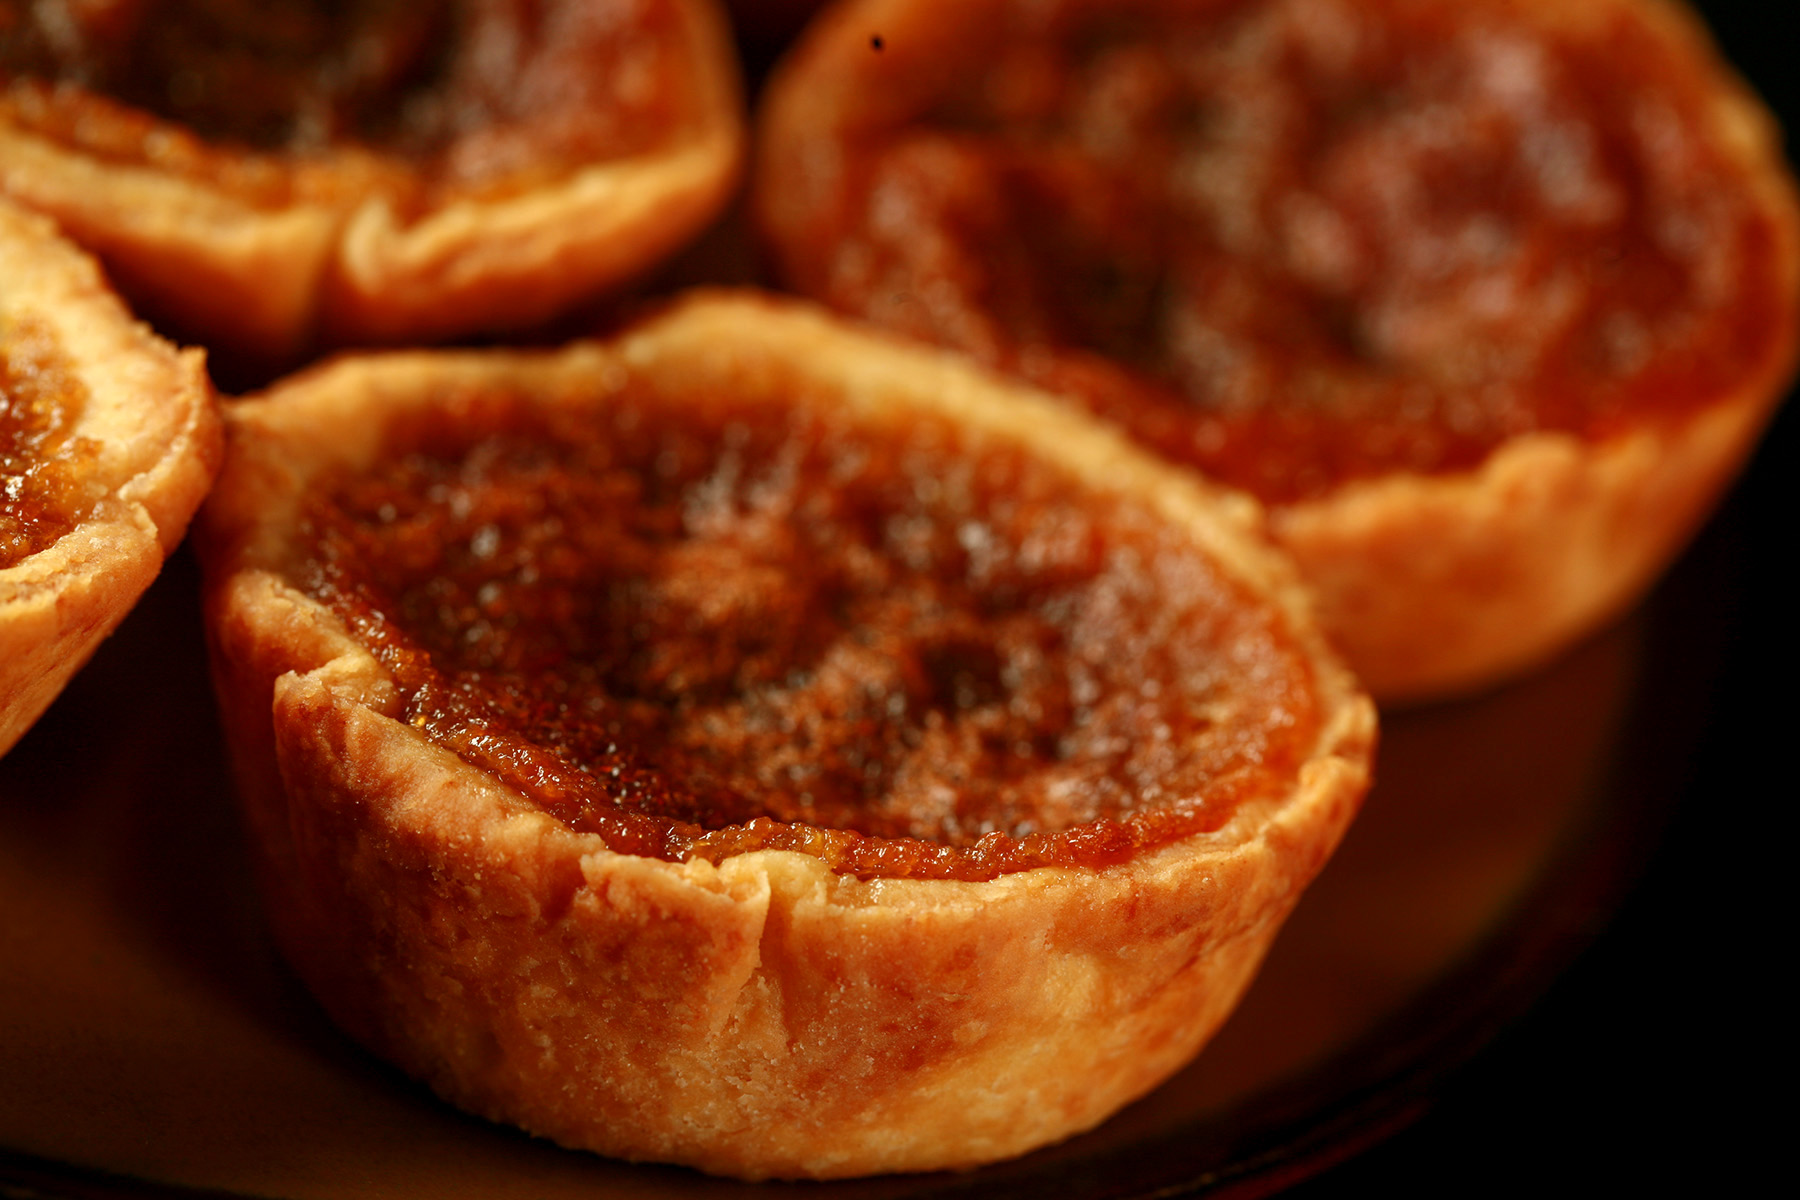 A brown plate is crowded with gluten-free butter tarts - mini tarts with a gooey sugar filling and raisins